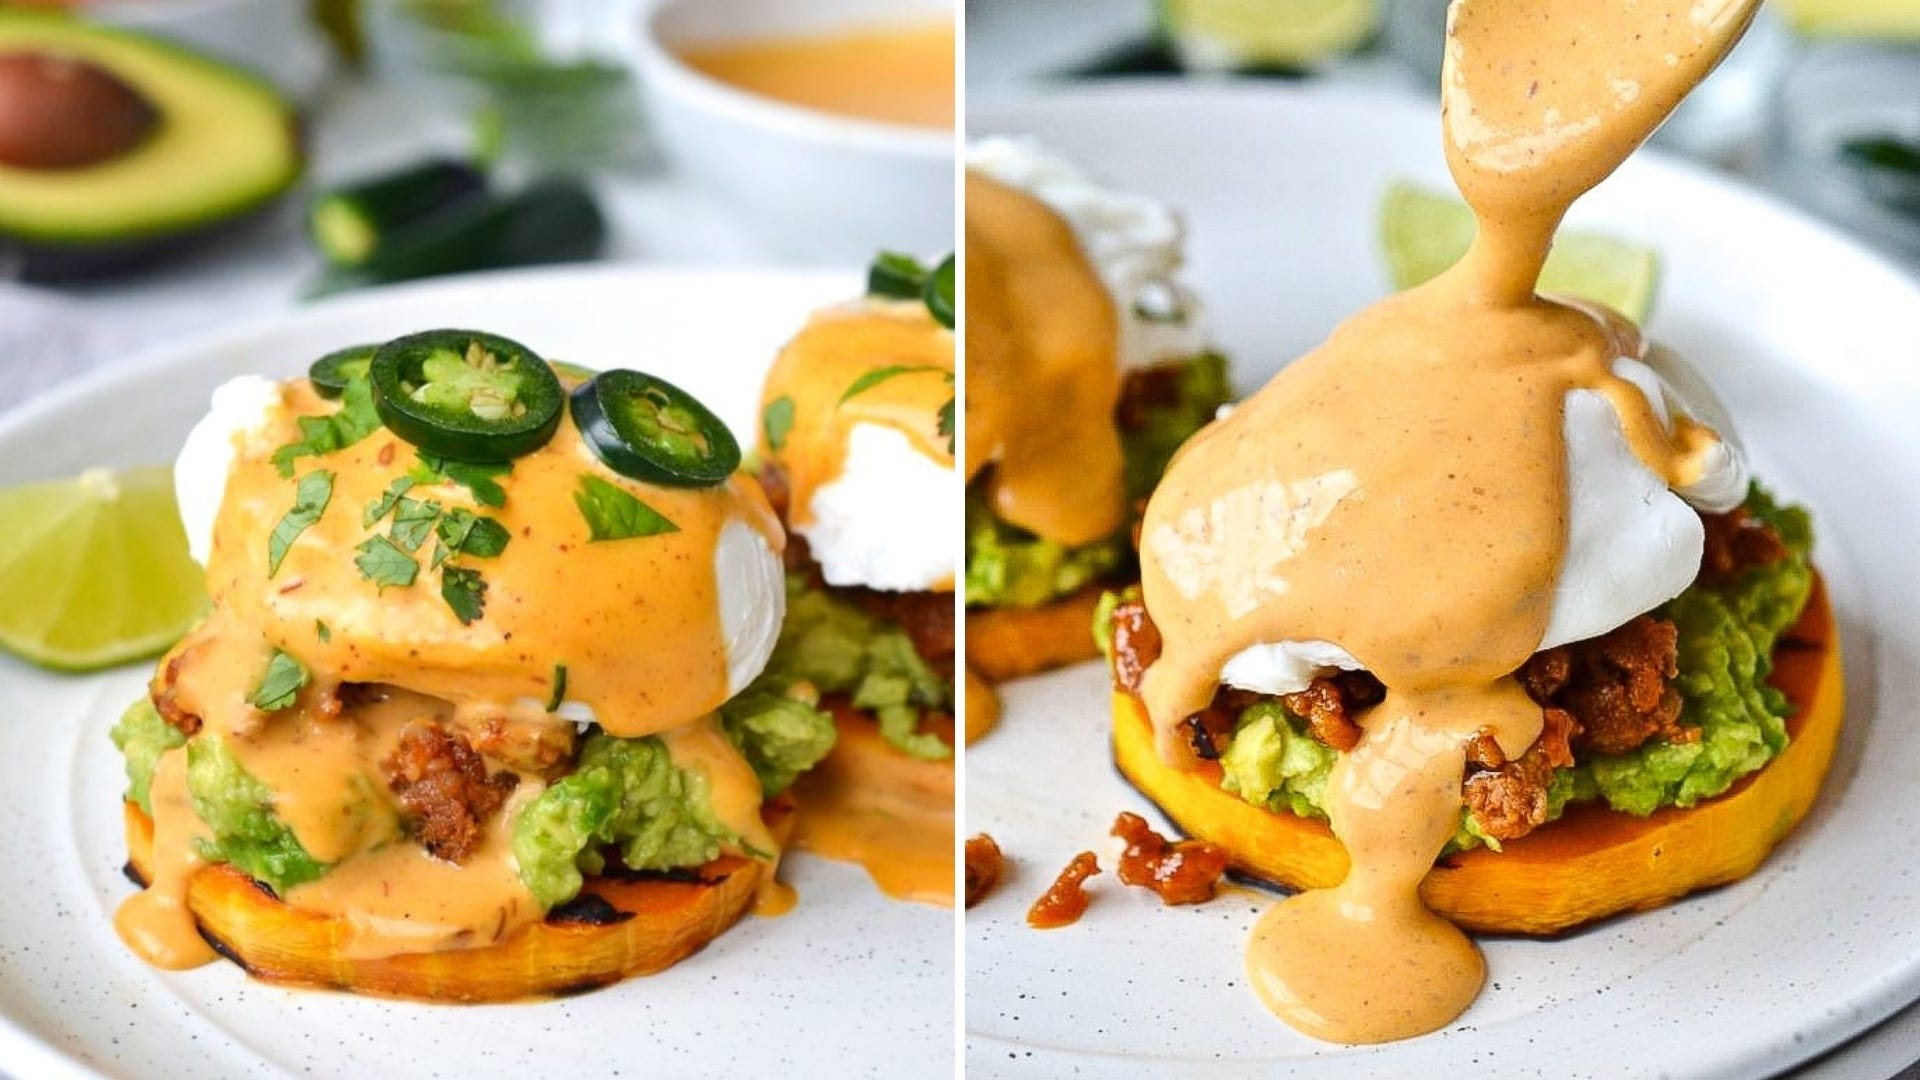 An Eggs Benedict dish with a chipotle sauce and jalapeños on top.